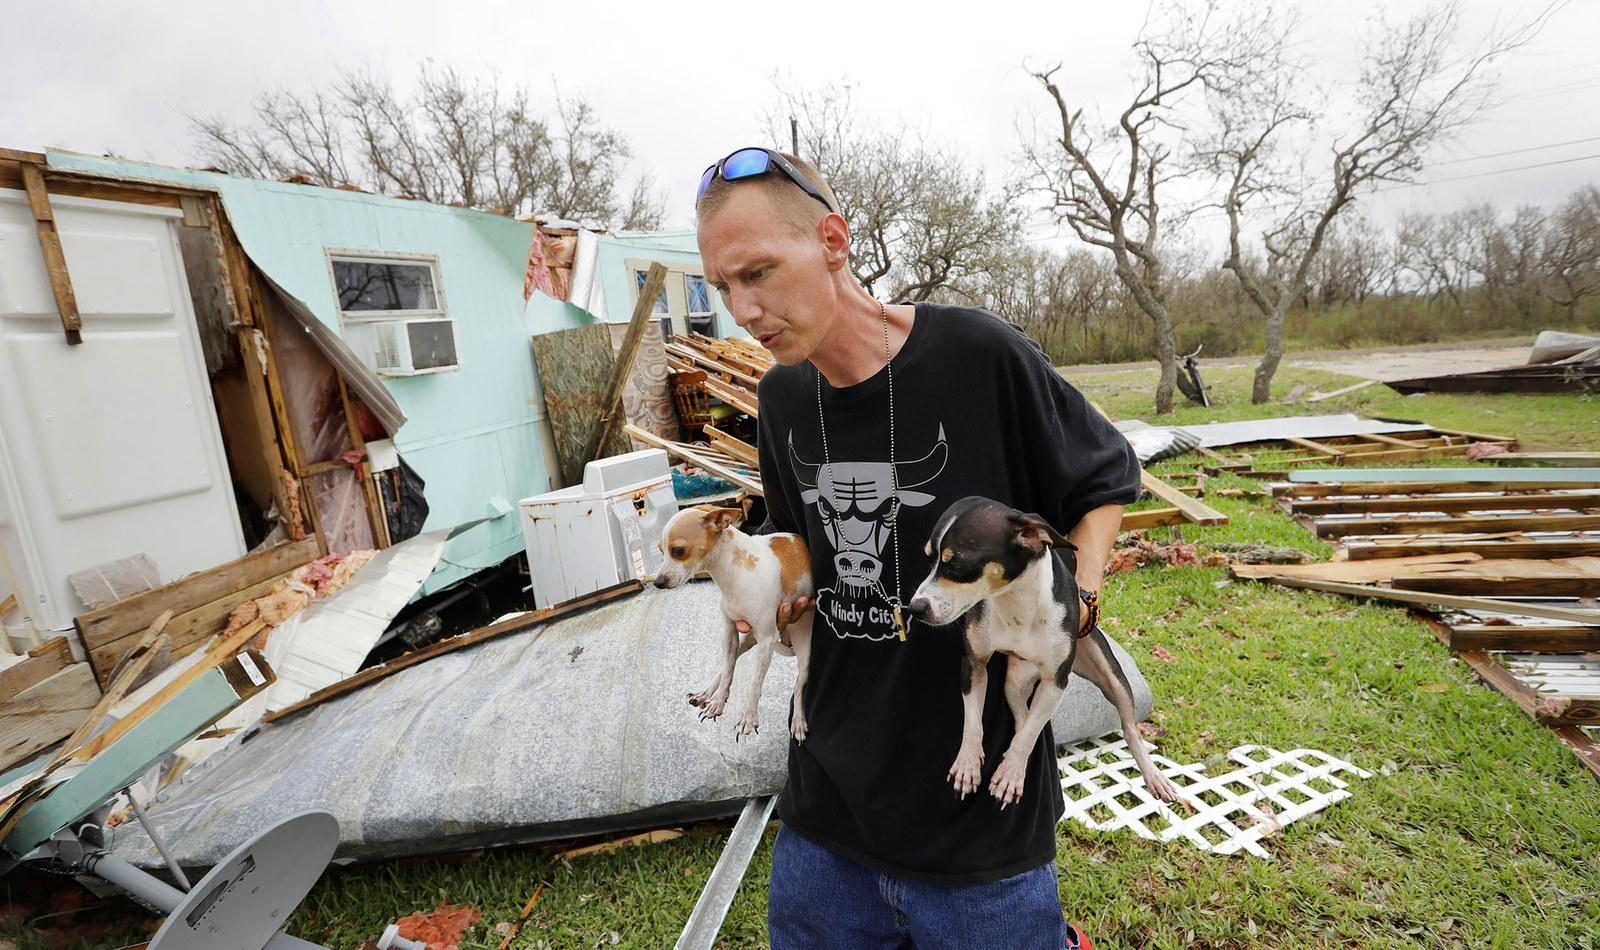 Sam Speights holds two of his dogs as he checks on the damage to his home on Aug. 27, in Rockport, Texas. Speights tried to stay in his home during the storm but had to move to other shelter after his lost his roof and back wall.